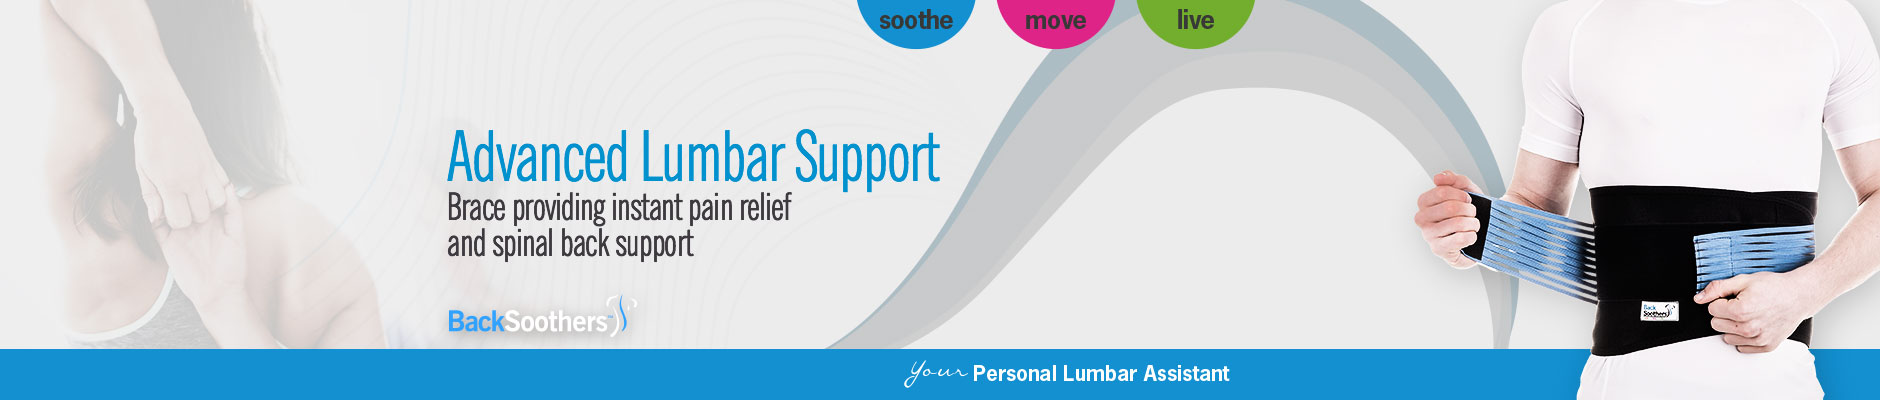 Advanced Lumbar Support